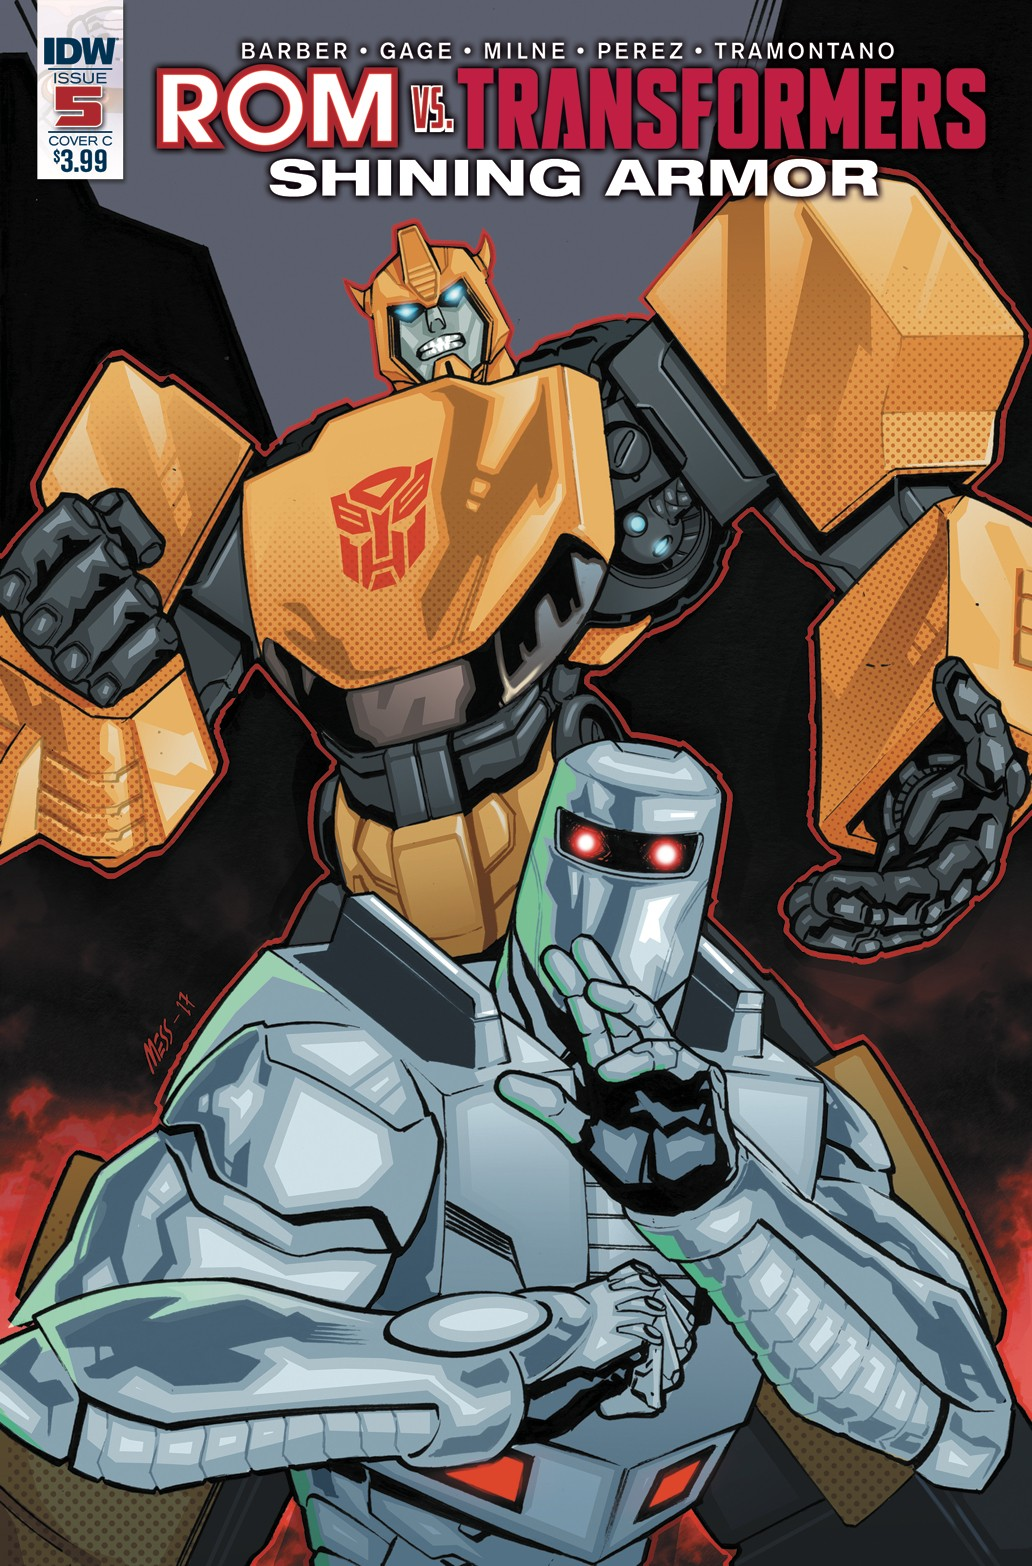 Transformers News: Variant Covers for IDW Rom Vs. Transformers: Shining Armor #5, by Roche/Burcham & Messina